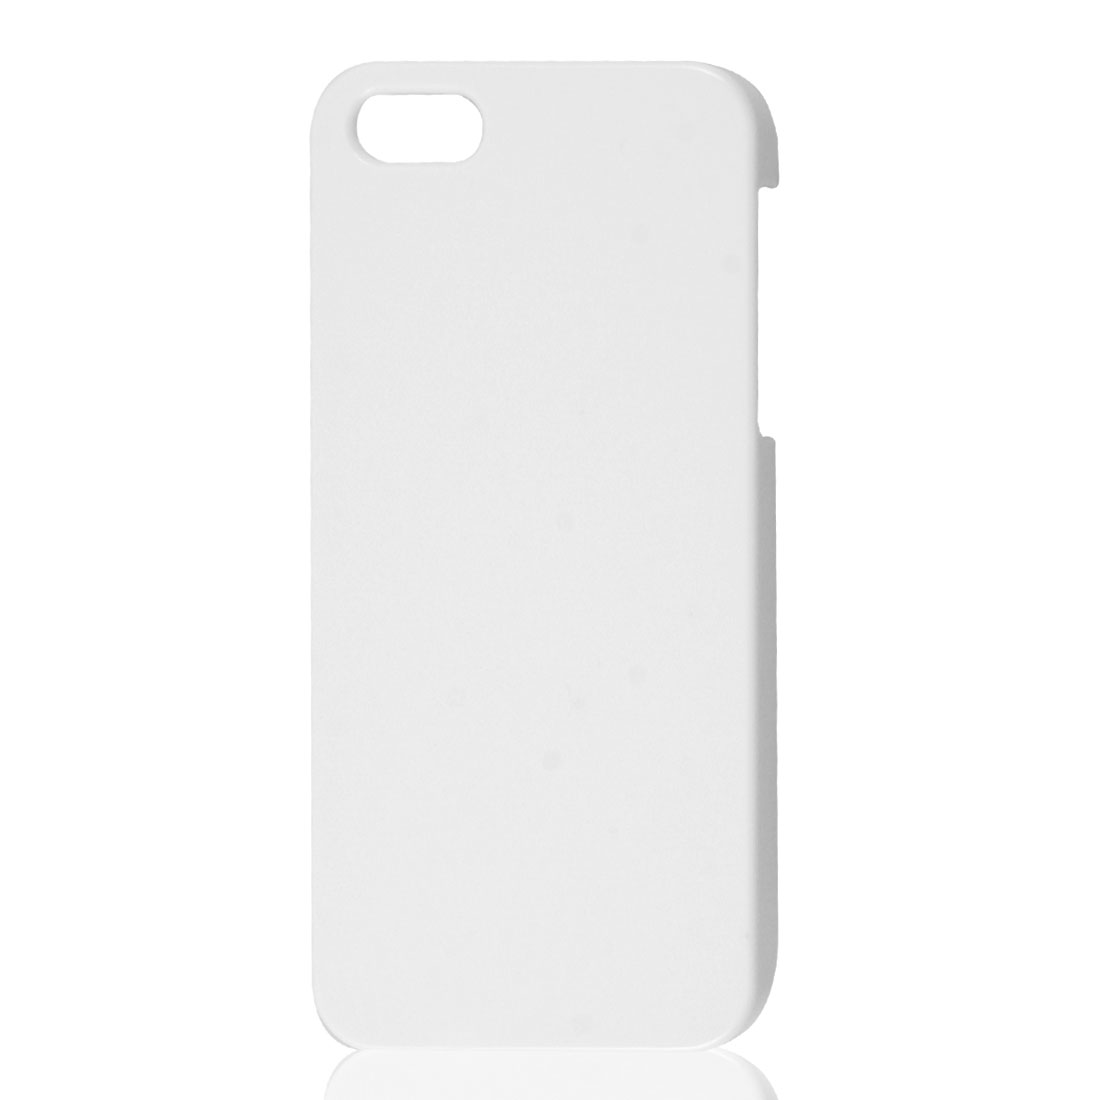 White Hard Back Case Protective Cover Skin for iPhone 5 5G